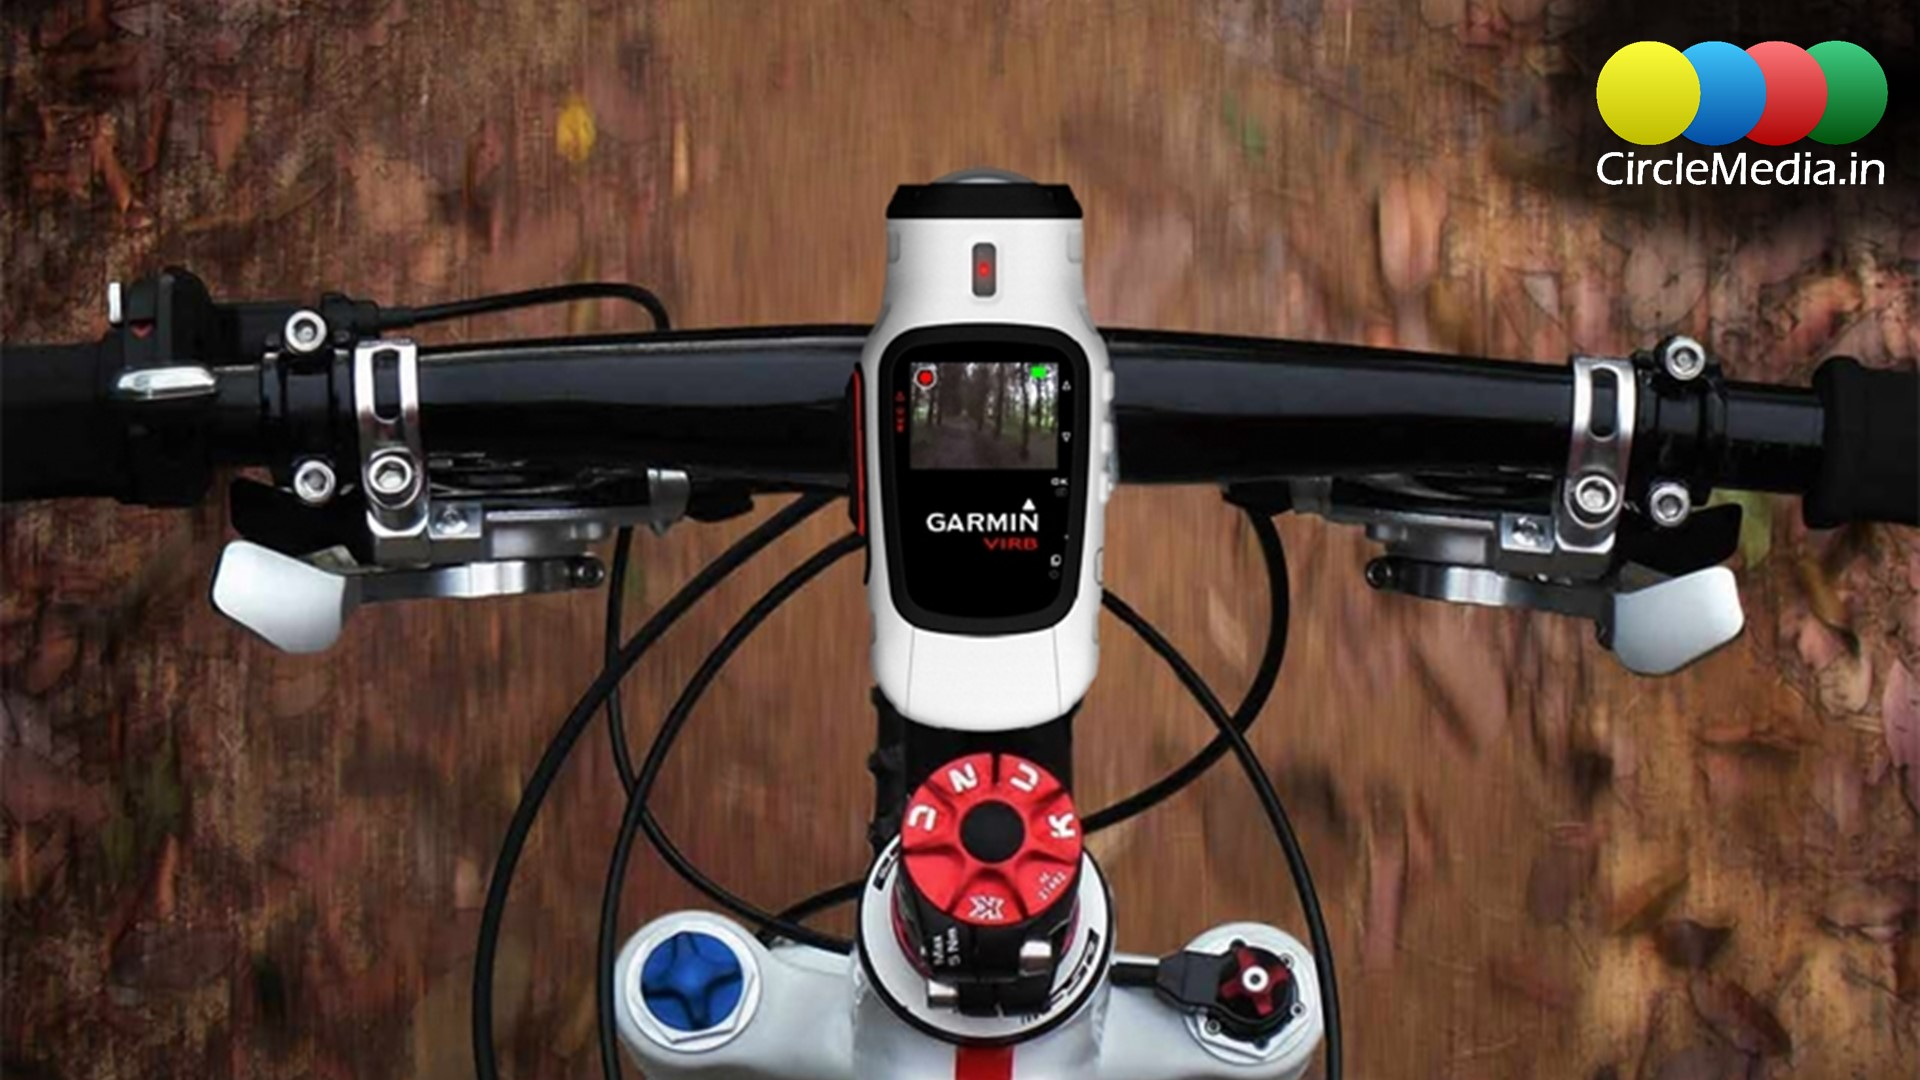 Garmin Virb Elite Review, Best Action Cameras, GoPro Alternative Camera